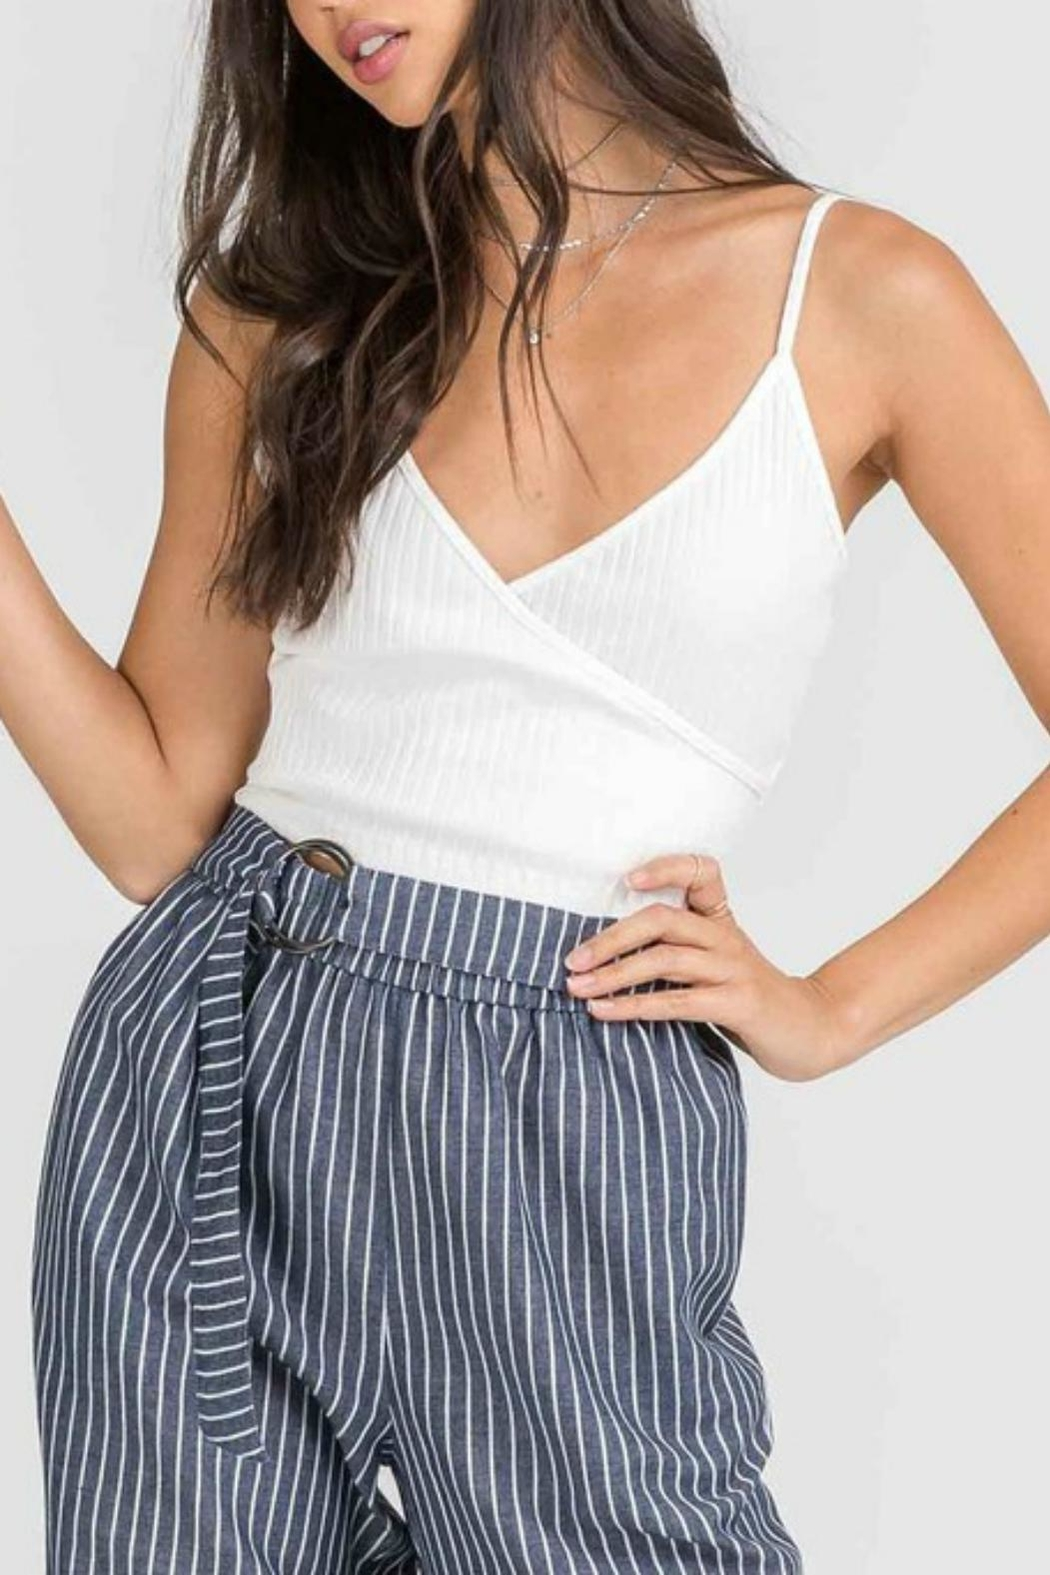 Pretty Little Things Crossover Crop Top - Main Image